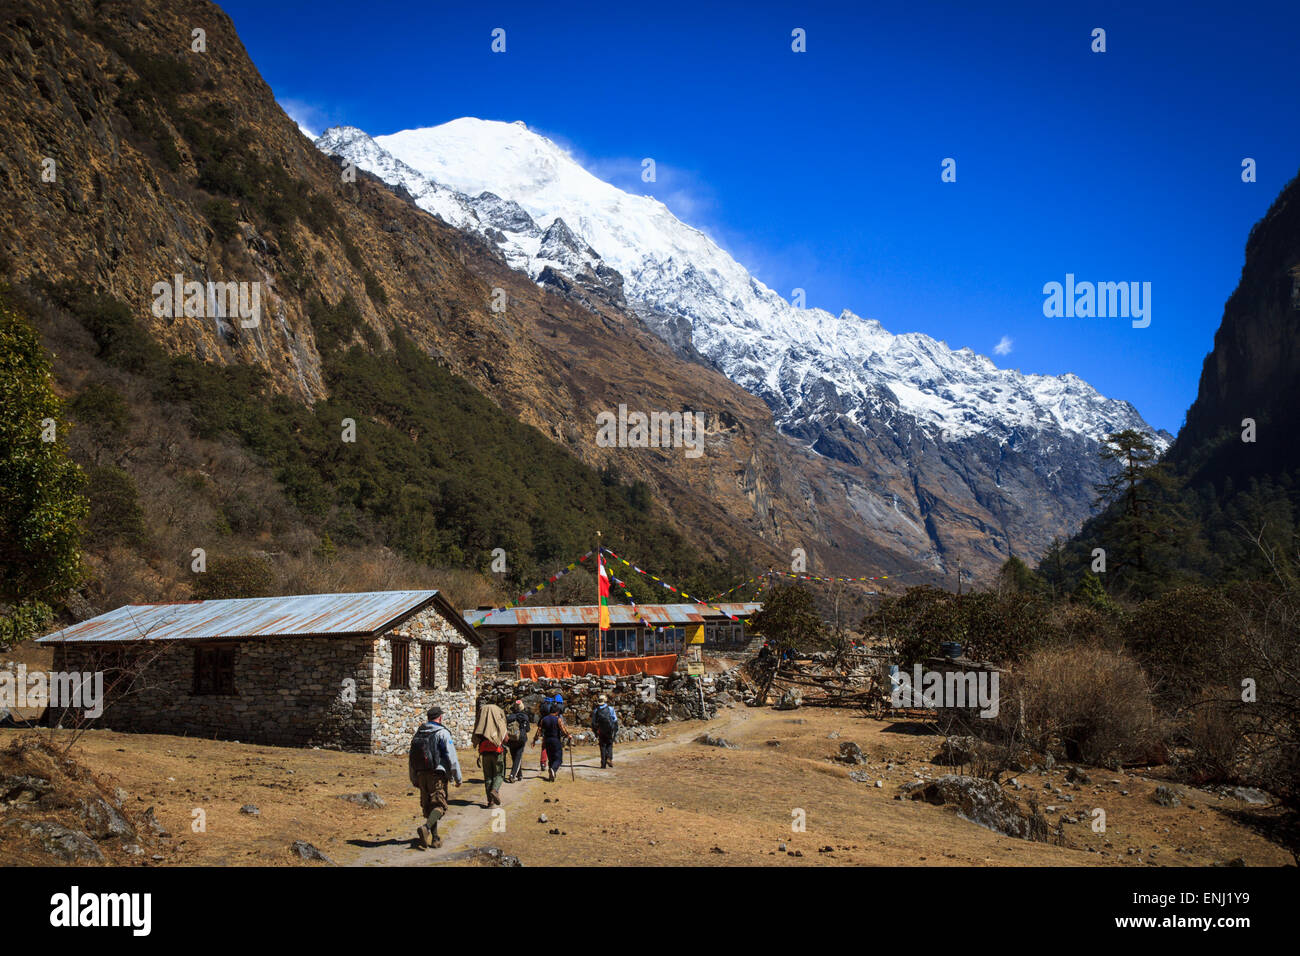 A group of trekkers approaching a guesthouse and restaurant at Ghodatabela, Langtang, Nepal - Stock Image